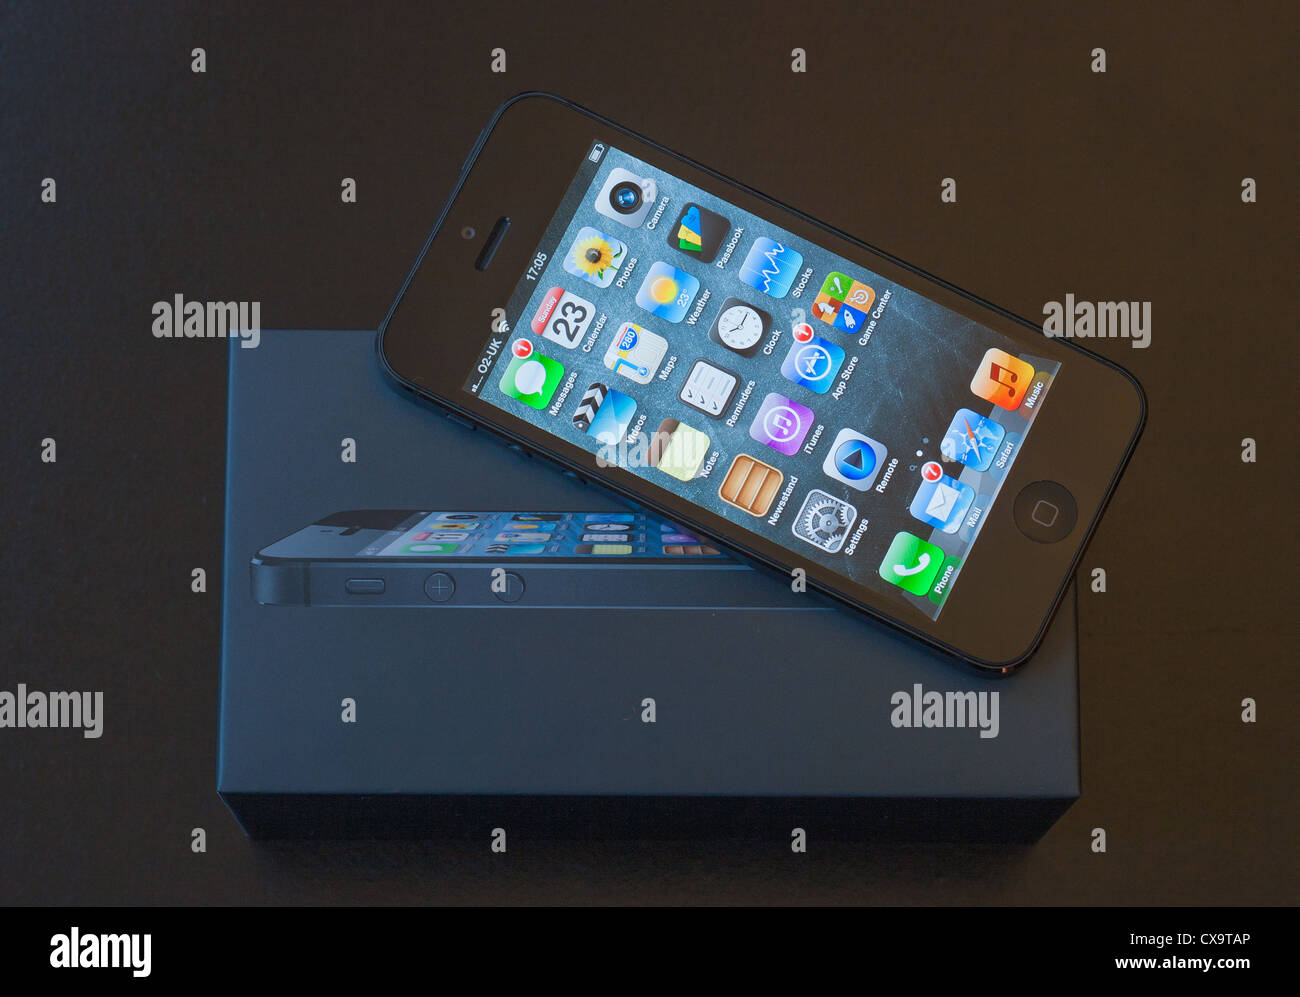 A brand new black Apple iPhone 5 lies on top of it's box - Stock Image